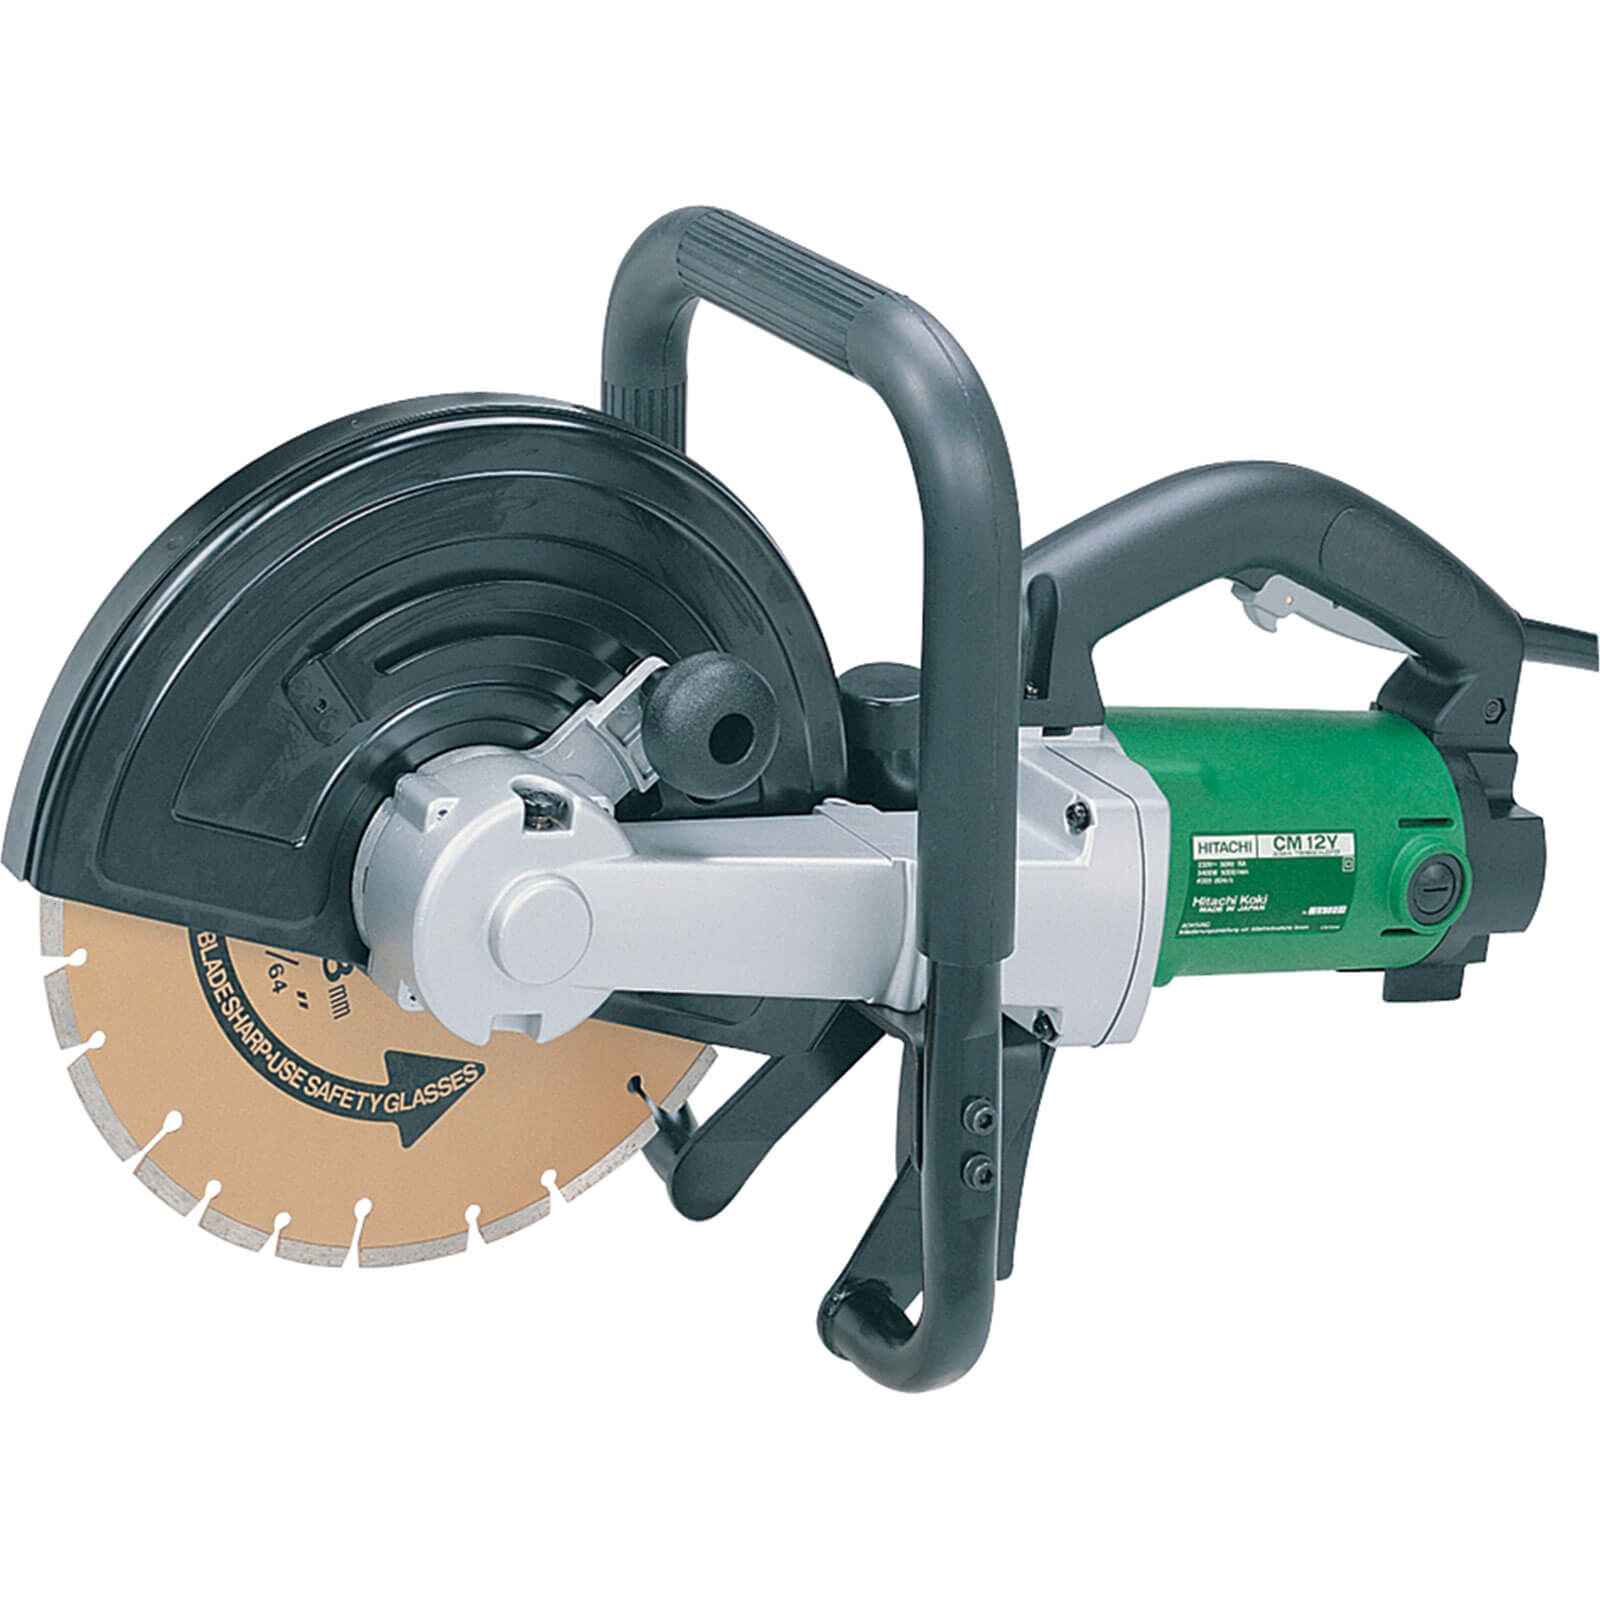 Image of Hitachi Cm12Y Disc Cutter 300mm 110v